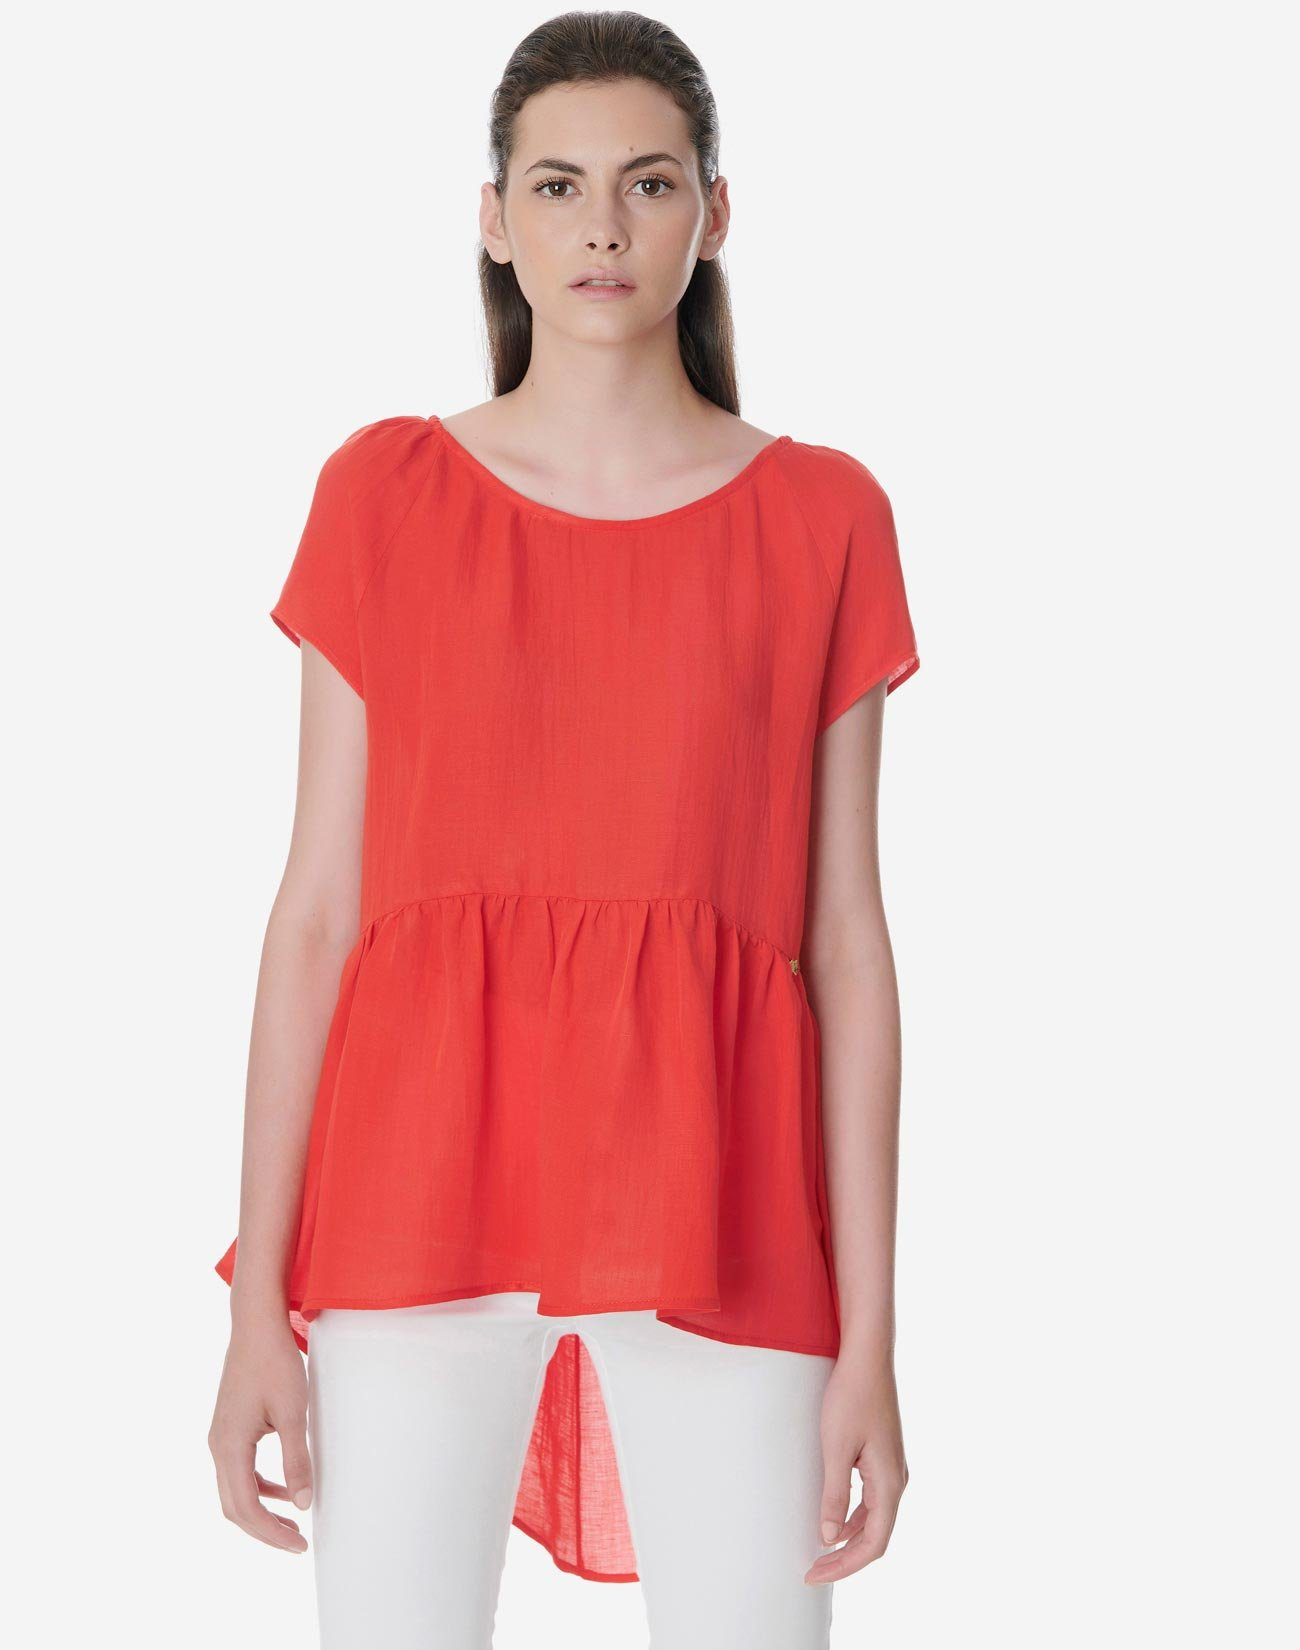 Asymmetric top with bow